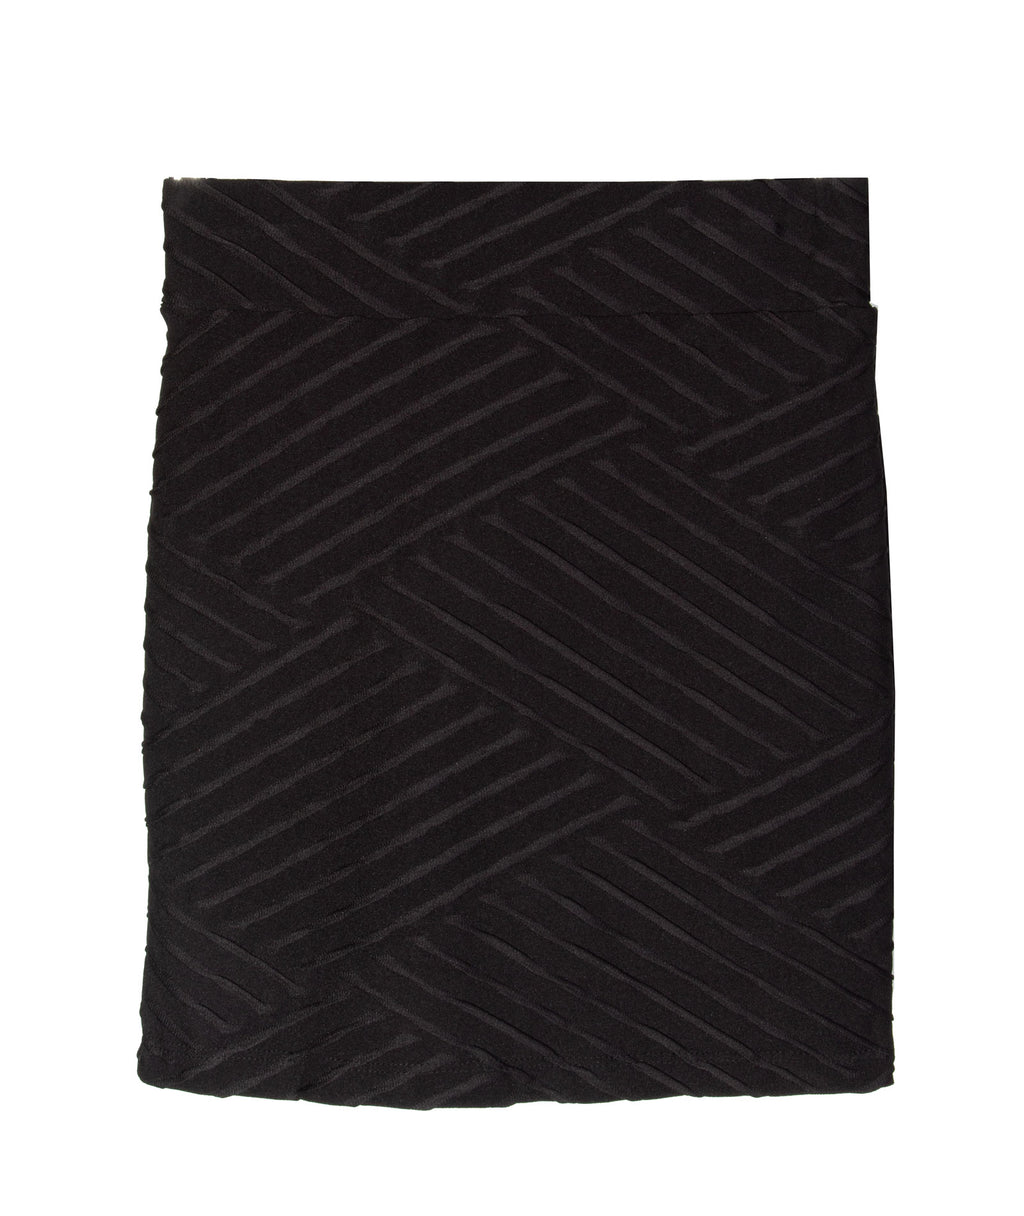 By Debra Girls Geometric Zig Zag Black Skirt